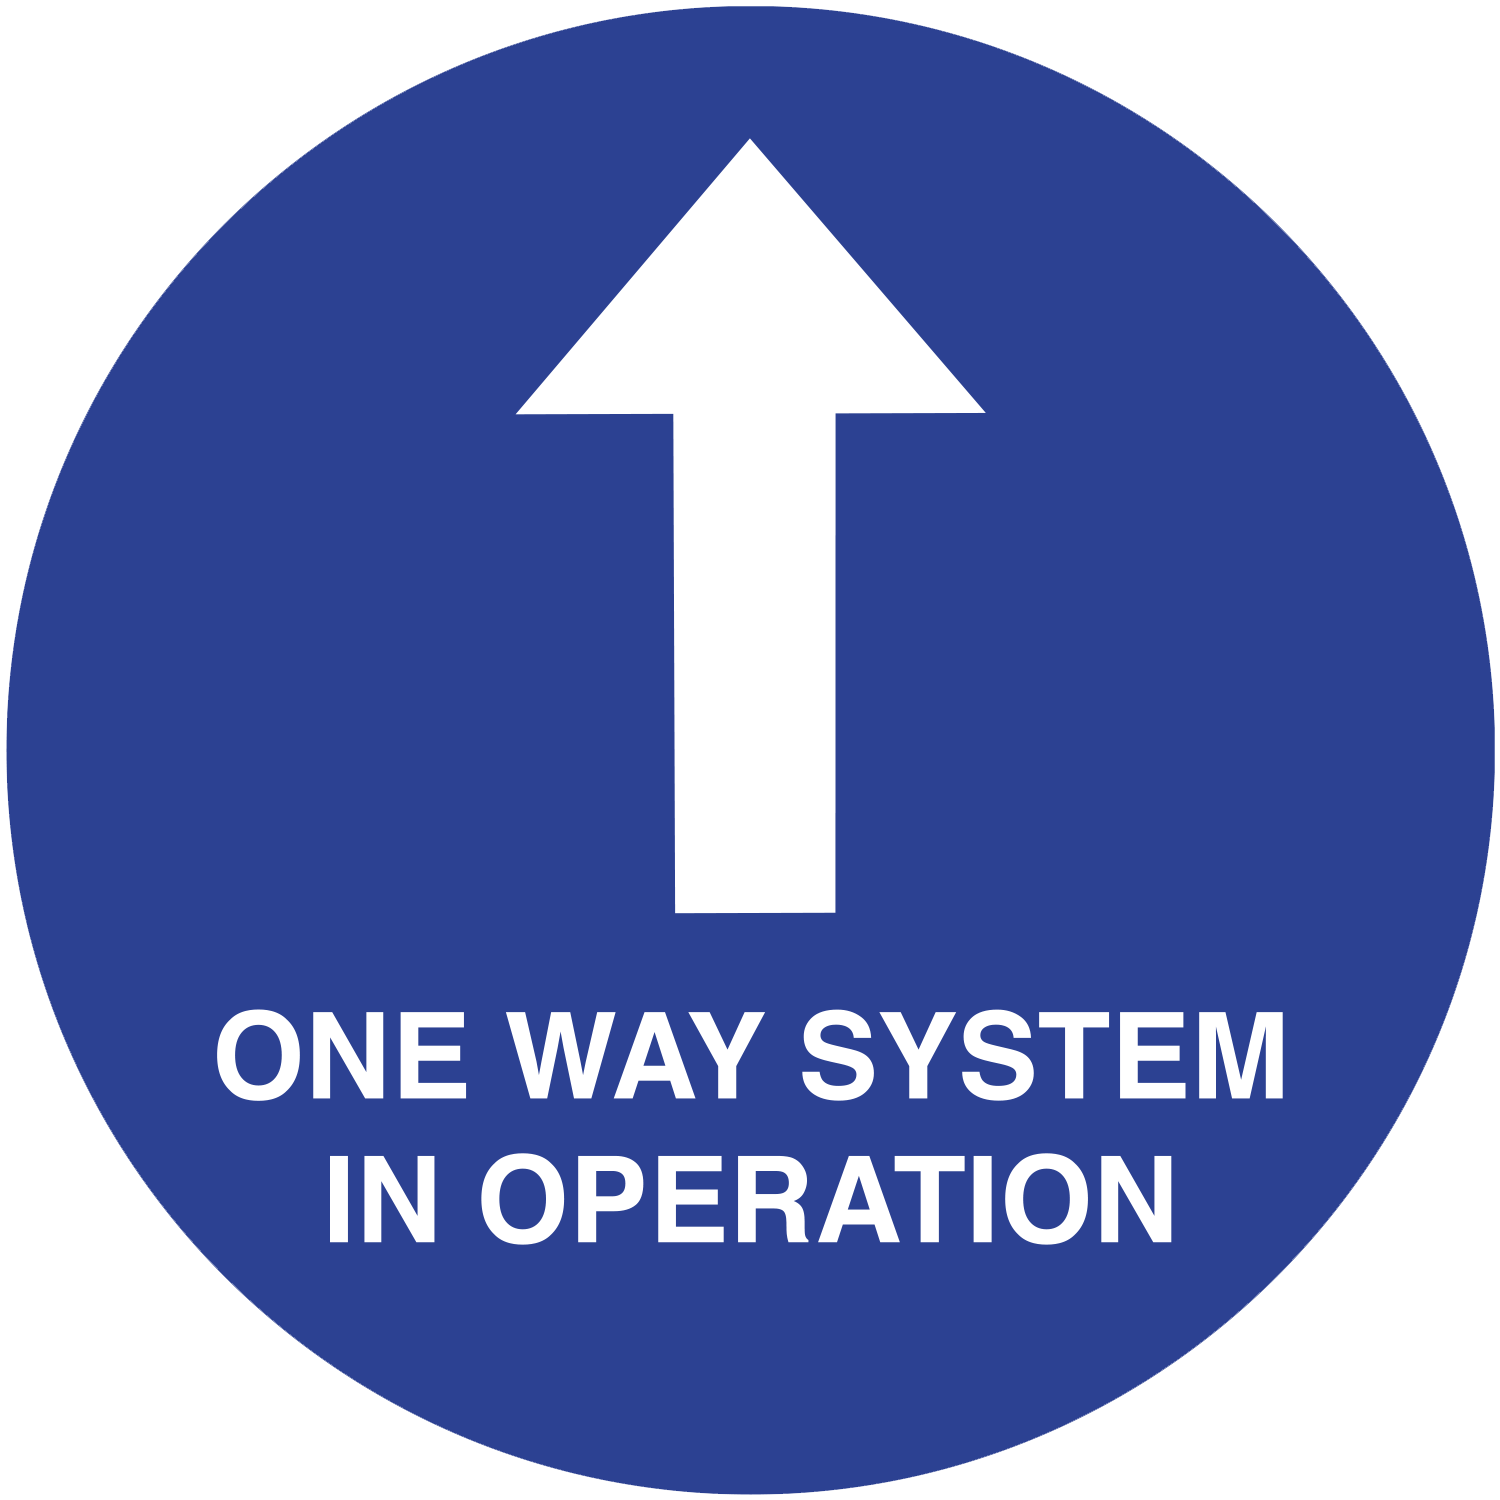 One Way System in operation floor sign